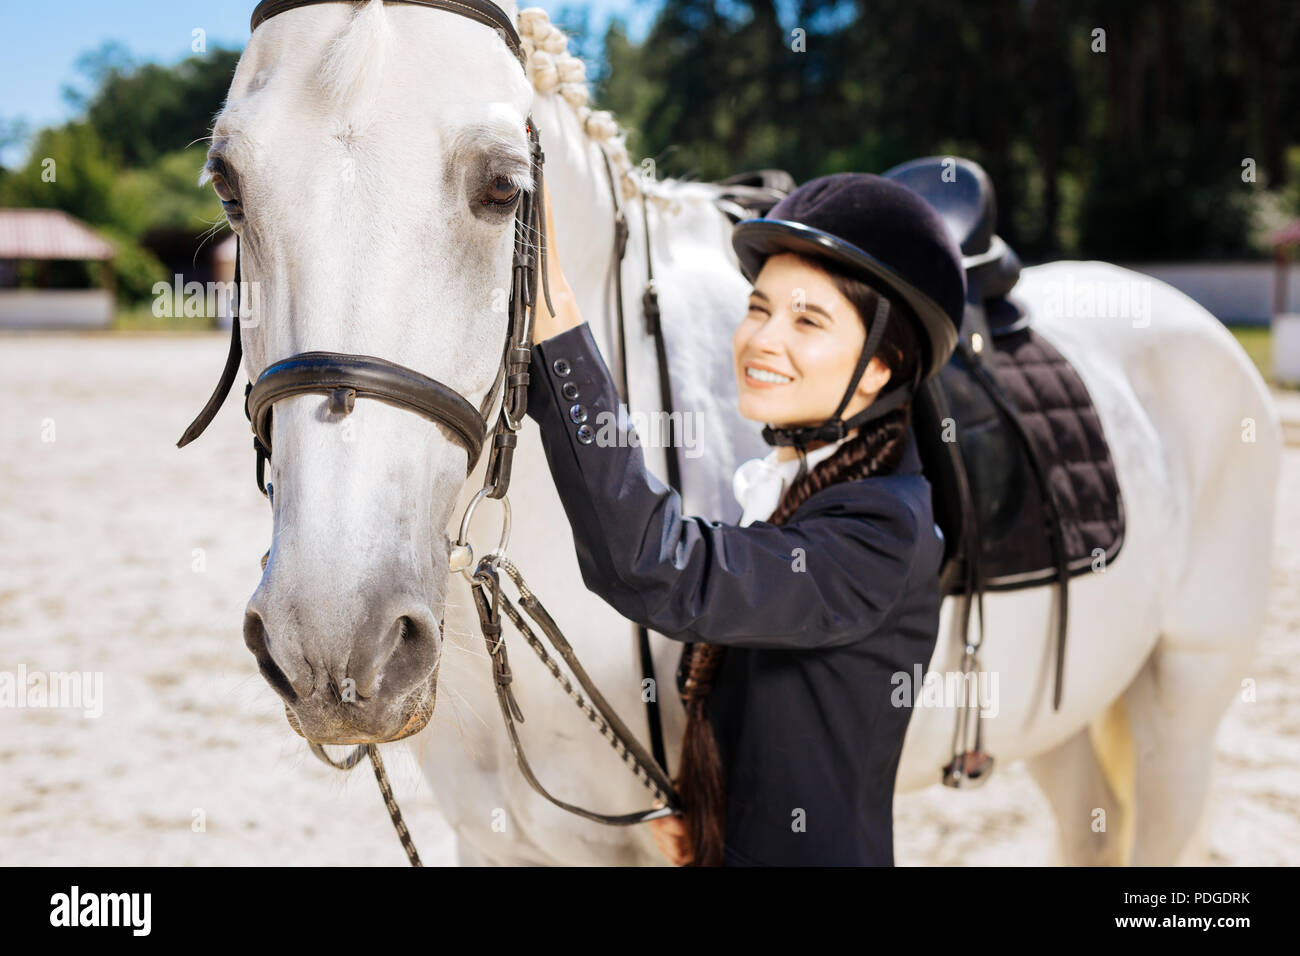 White racing horse standing submissively near his female owner - Stock Image